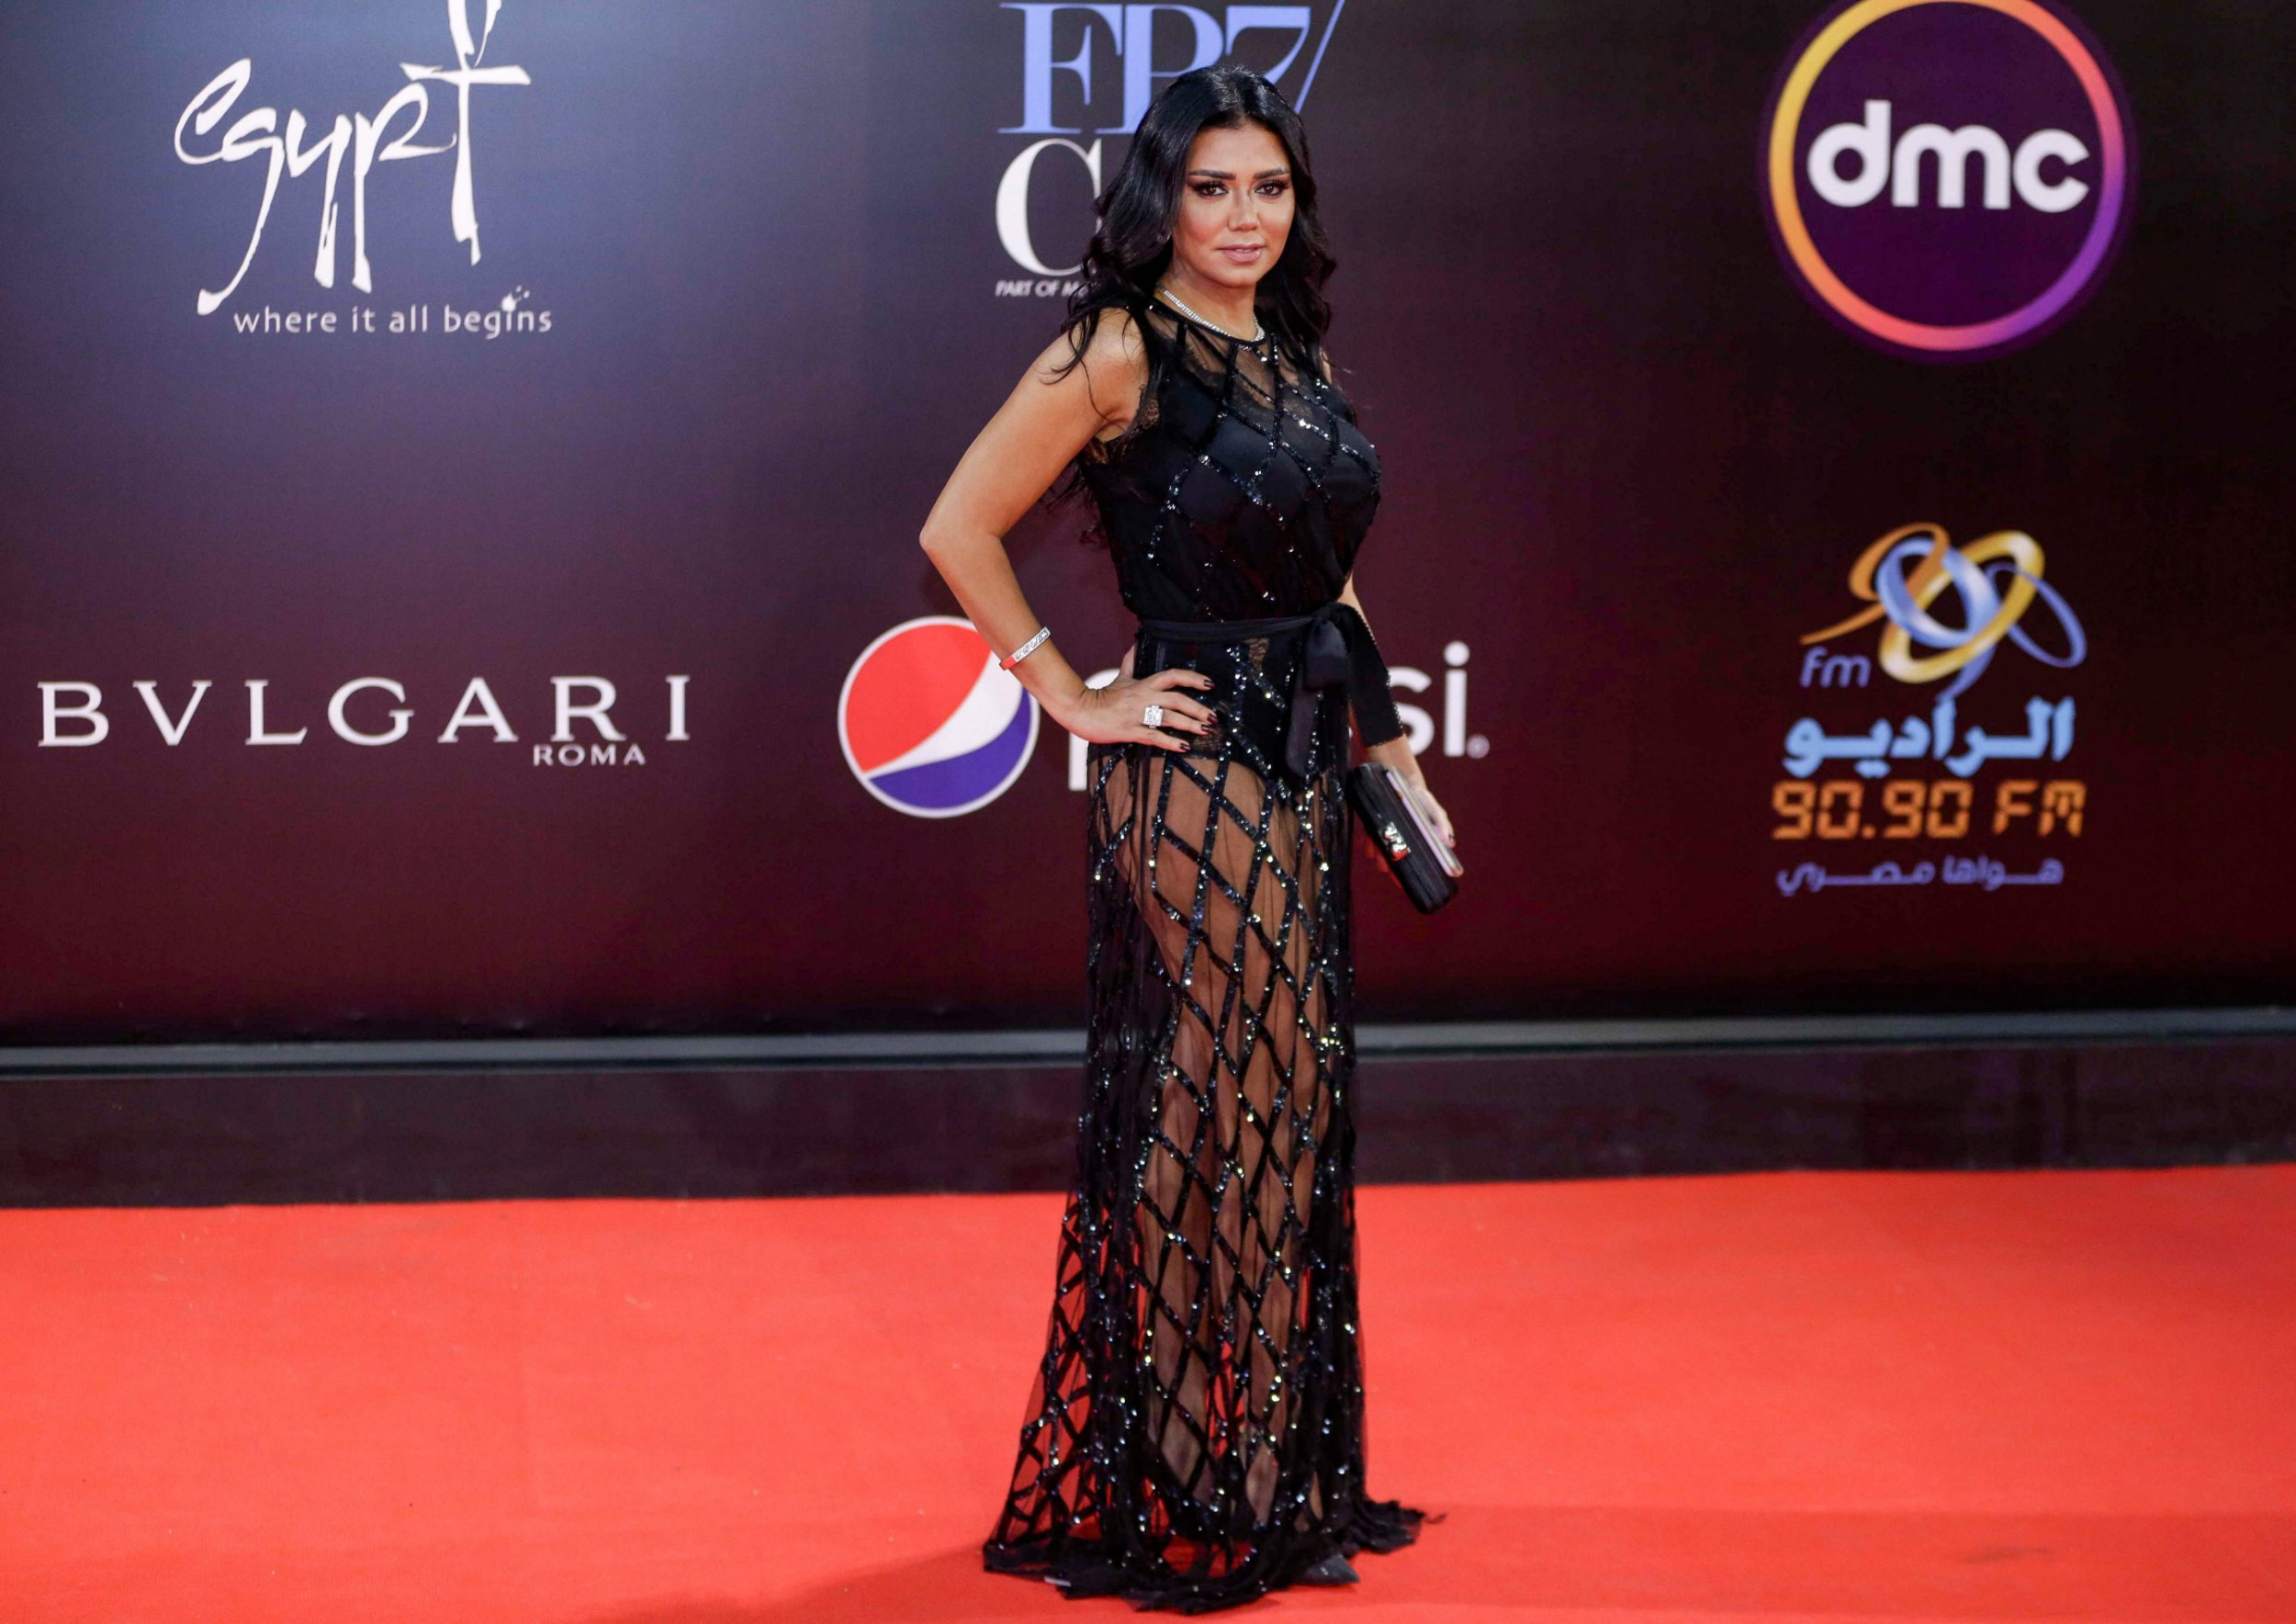 Egyptian actress Rania Youssef poses on the red carpet at the closing ceremony of the 40th edition of the Cairo International Film Festival (CIFF) at the Cairo Opera House in the Egyptian capital on November 29, 2018. (Photo by Suhail SALEH / AFP)SUHAIL SALEH/AFP/Getty Images